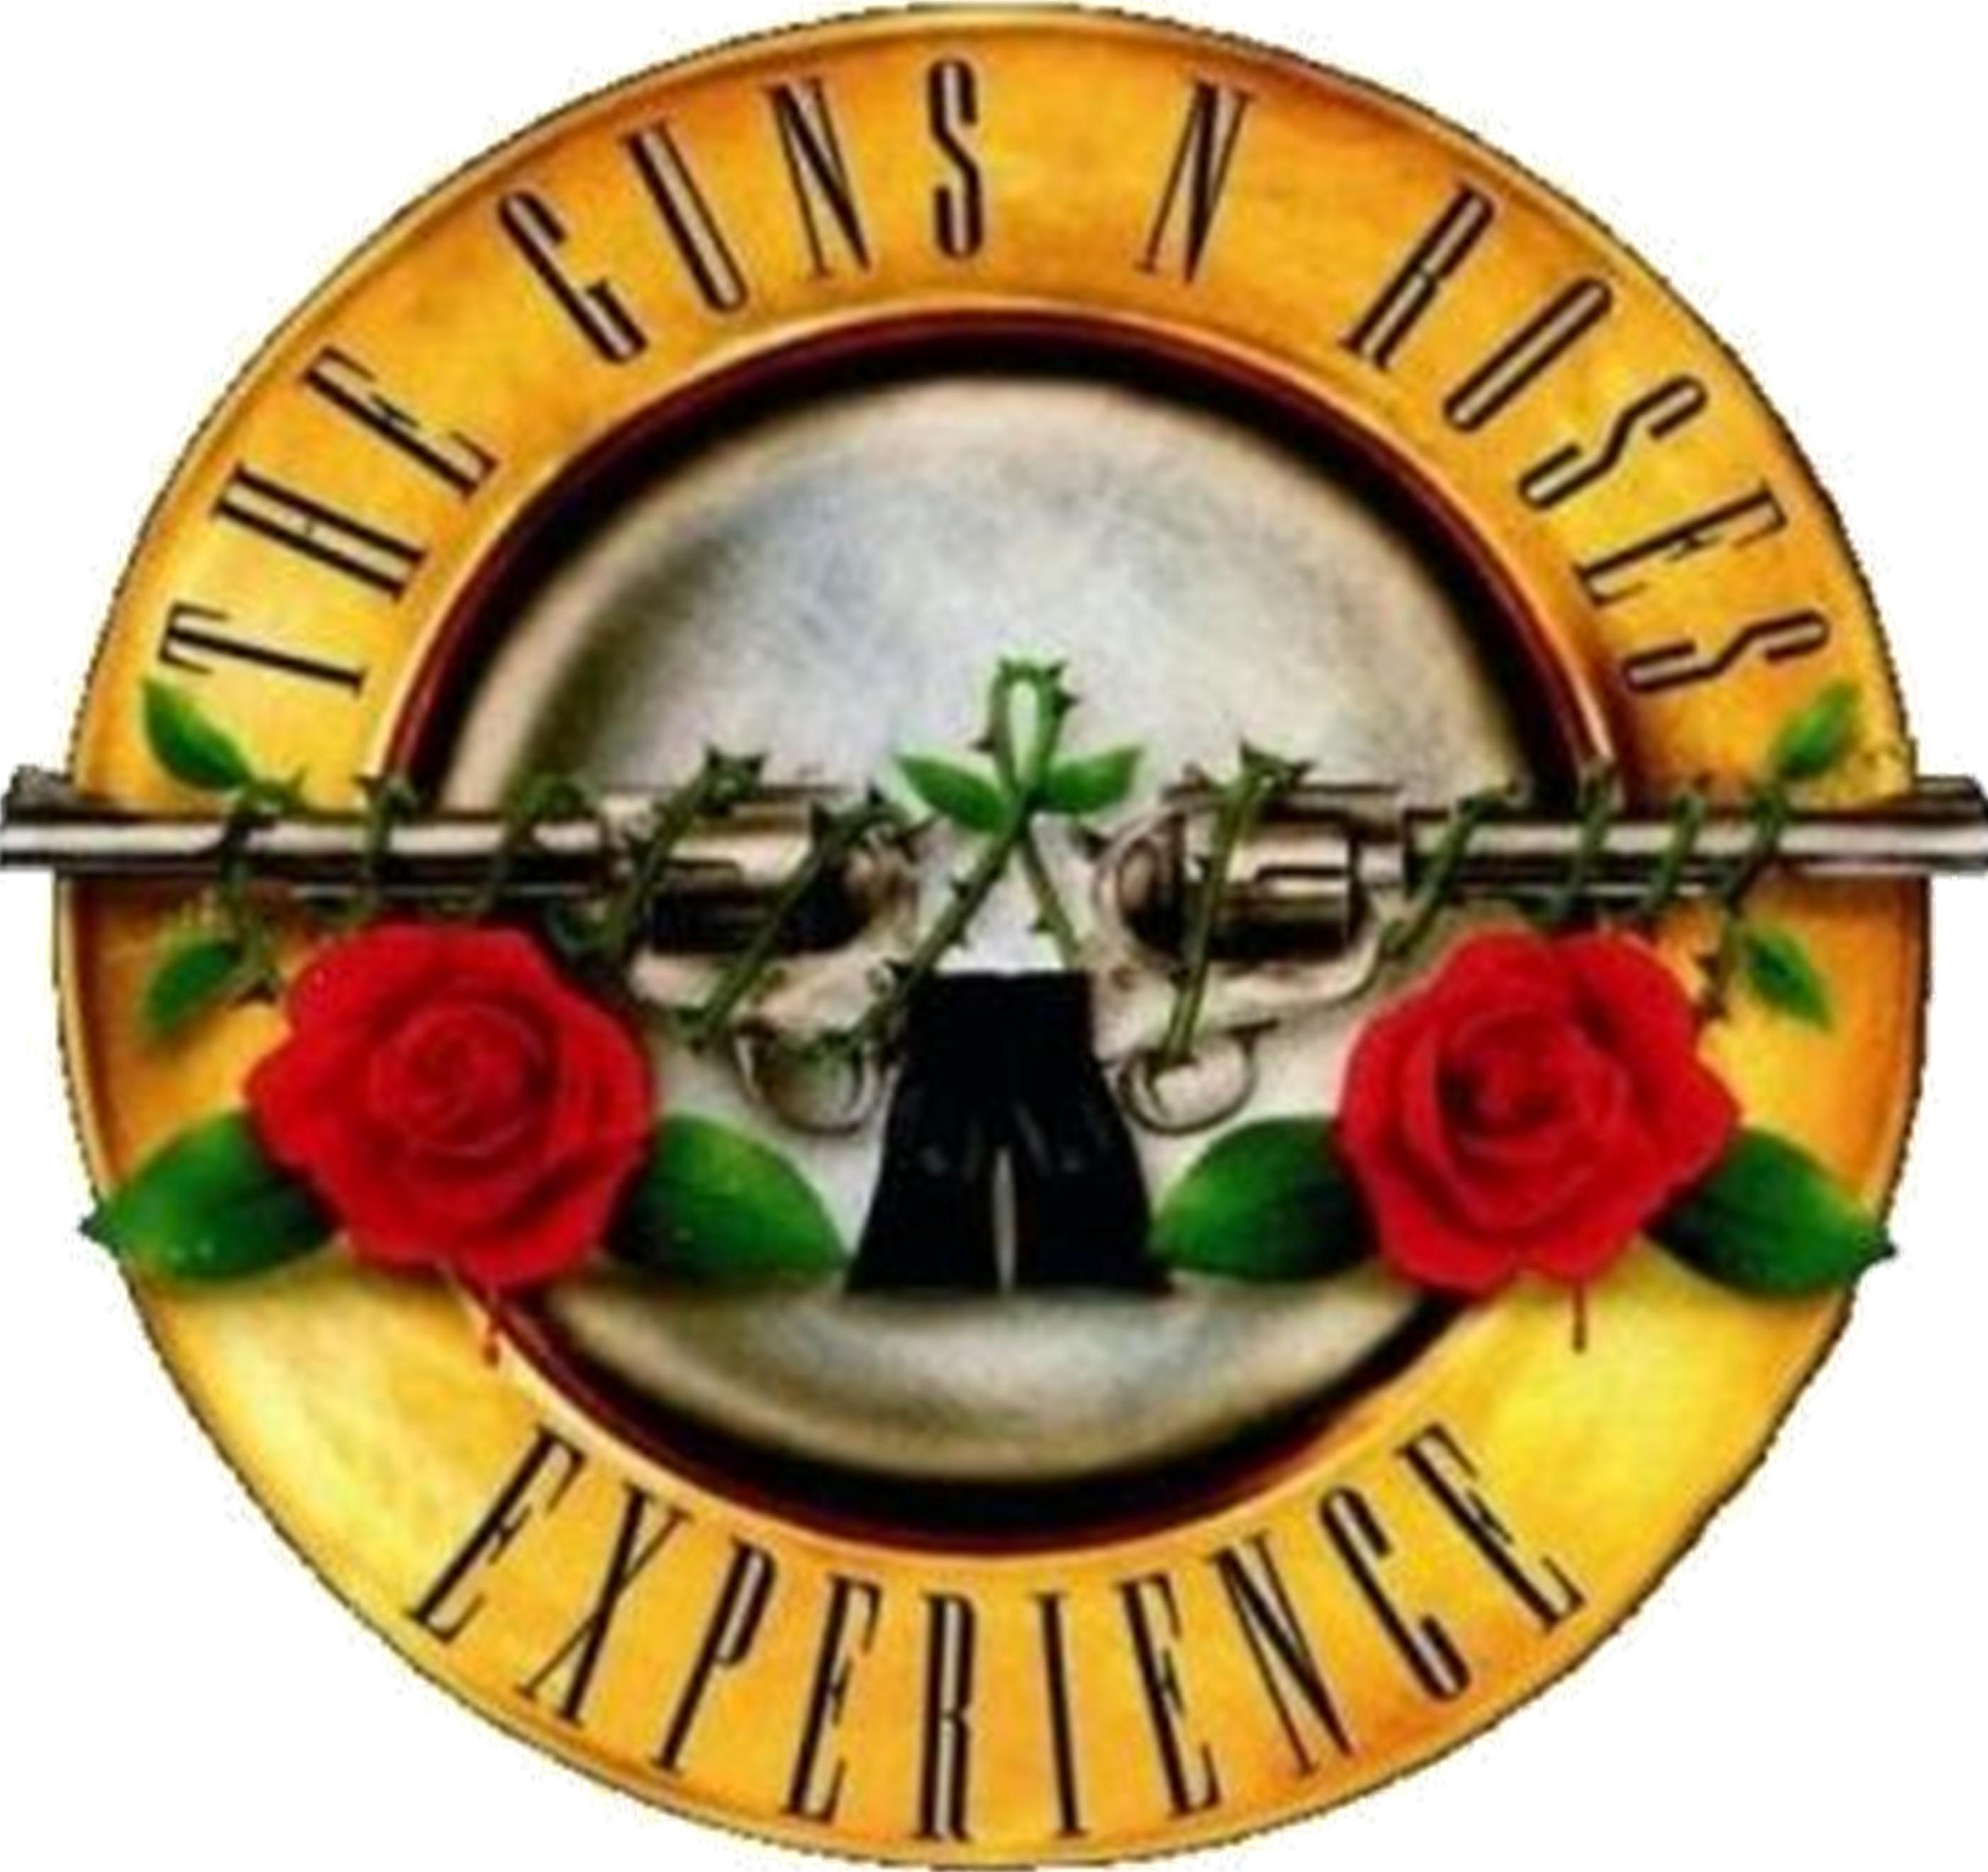 Guns n roses exprience w velvet revival at the booking hall dover guns n roses exprience w velvet revival at the booking hall dover dover on 06 jul 2018 thecheapjerseys Choice Image